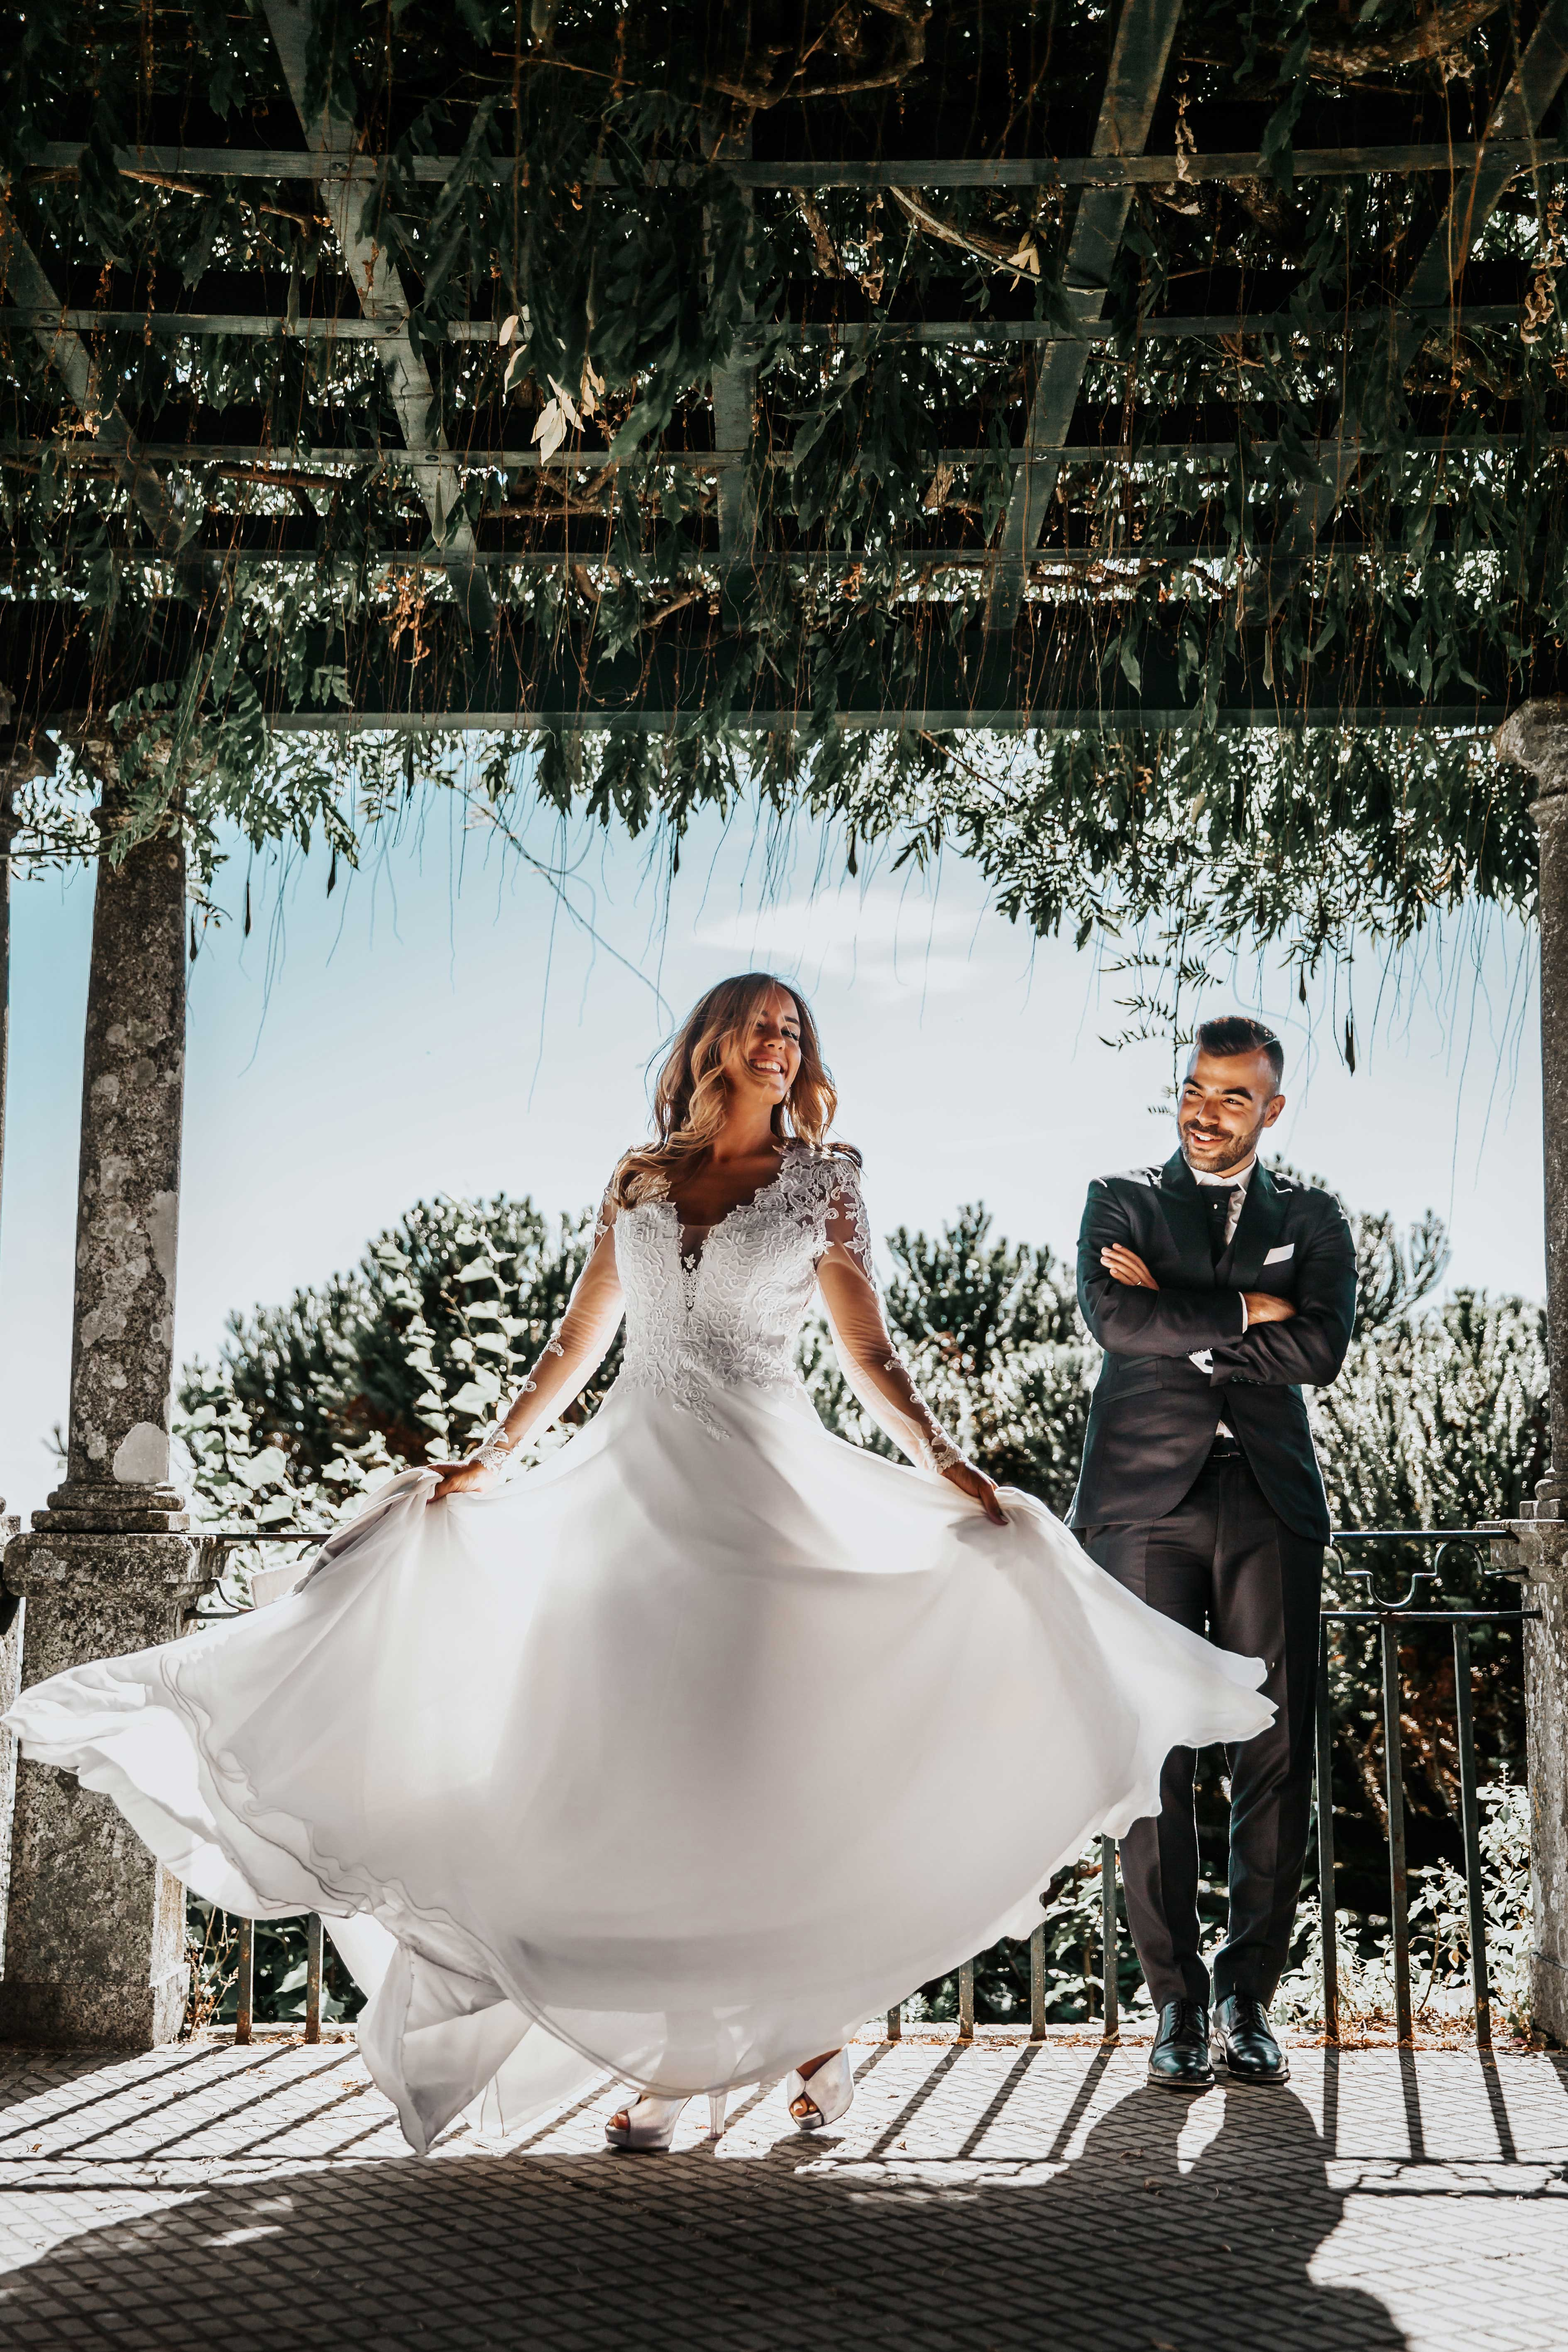 after-wedding-checklist-what-to-do-after-wedding-1